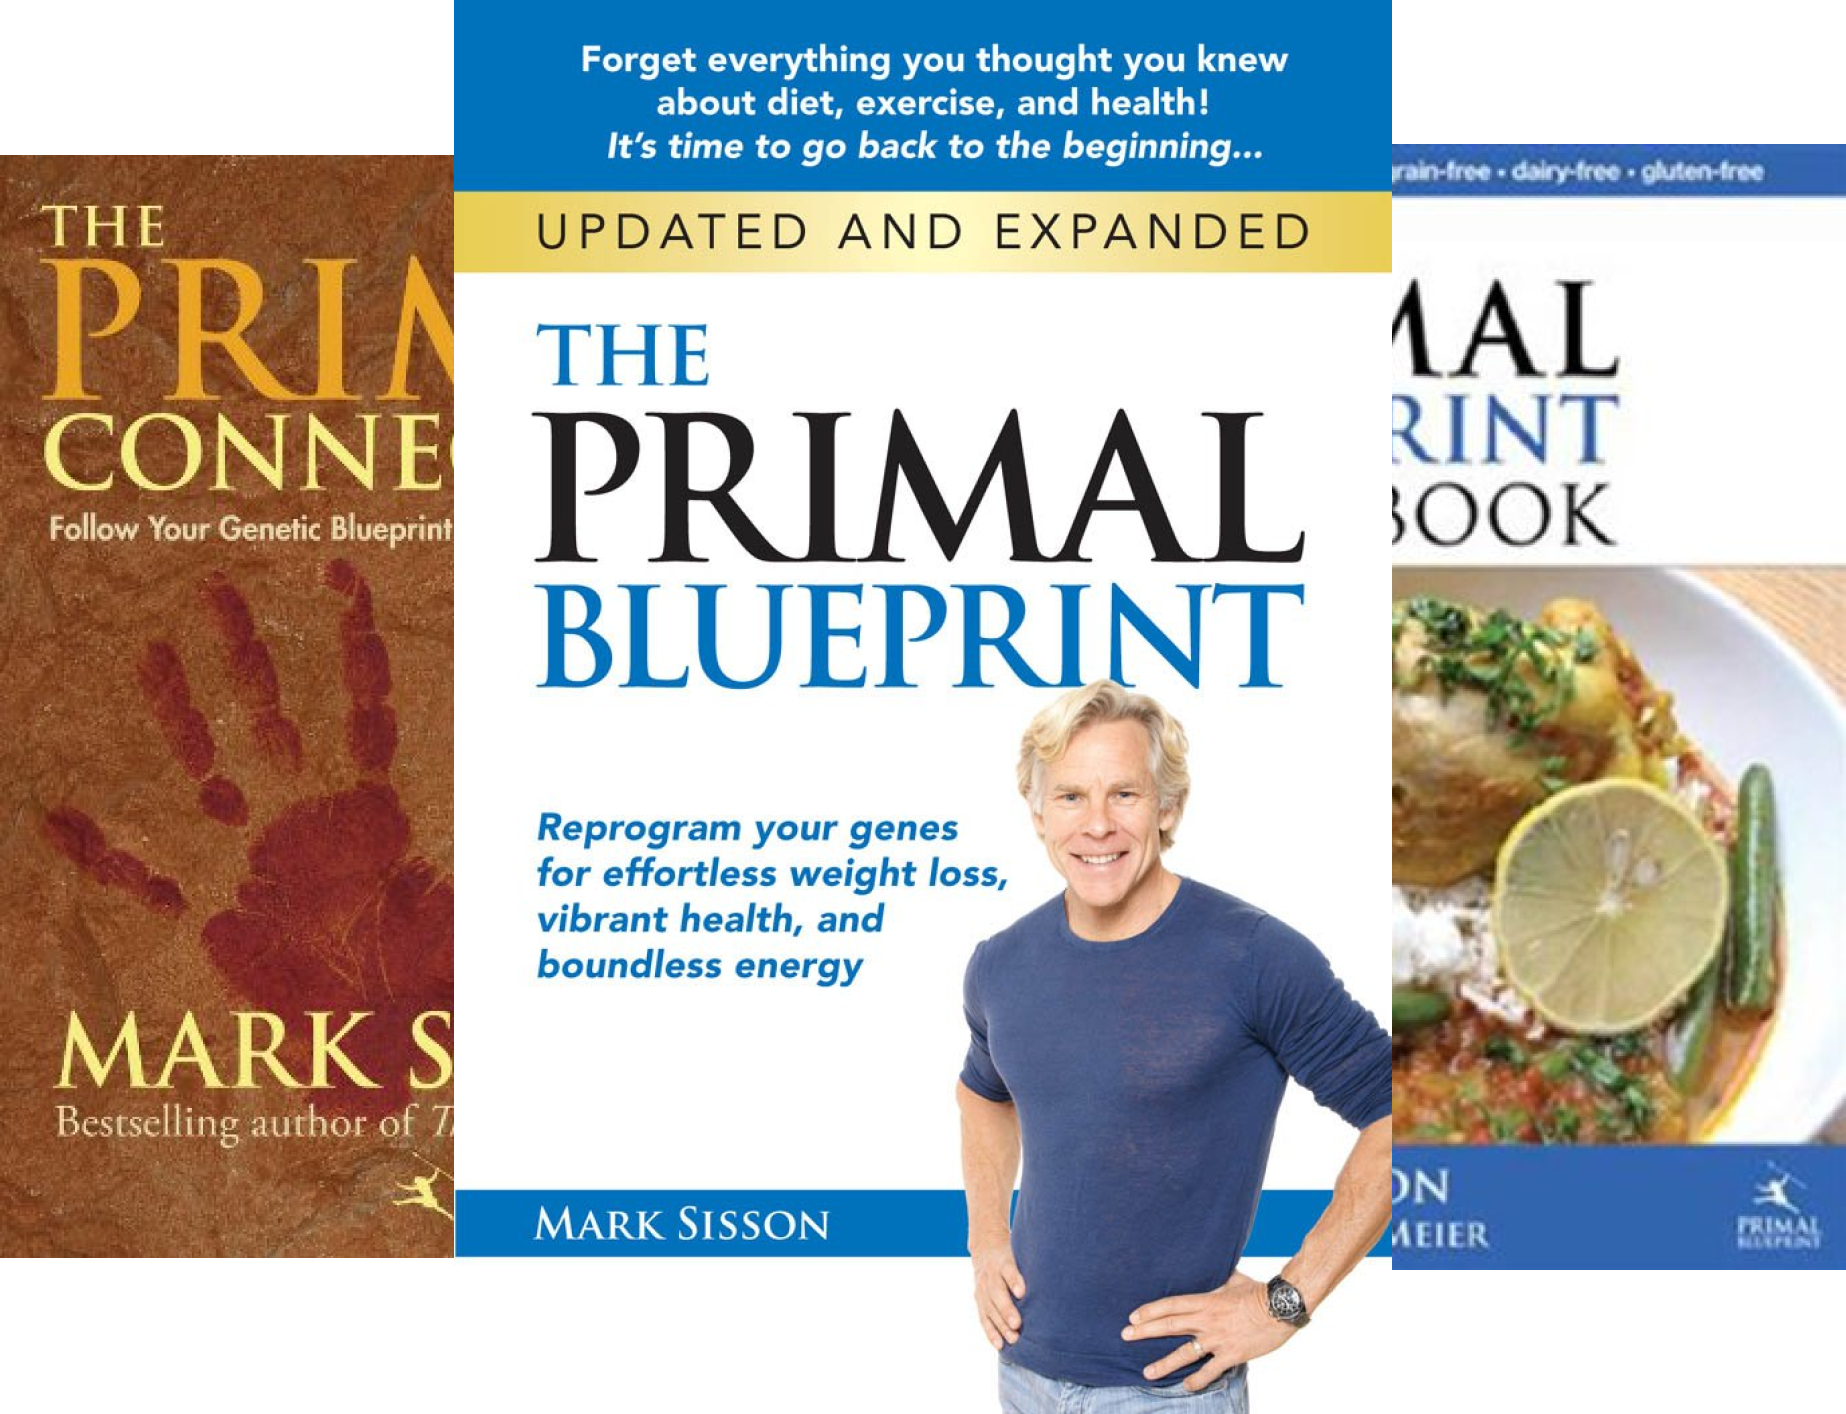 Download a collection of five hardcover primal blueprint books 5 download a collection of five hardcover primal blueprint books 5 book series book pdf audio iddkmxqtt malvernweather Images